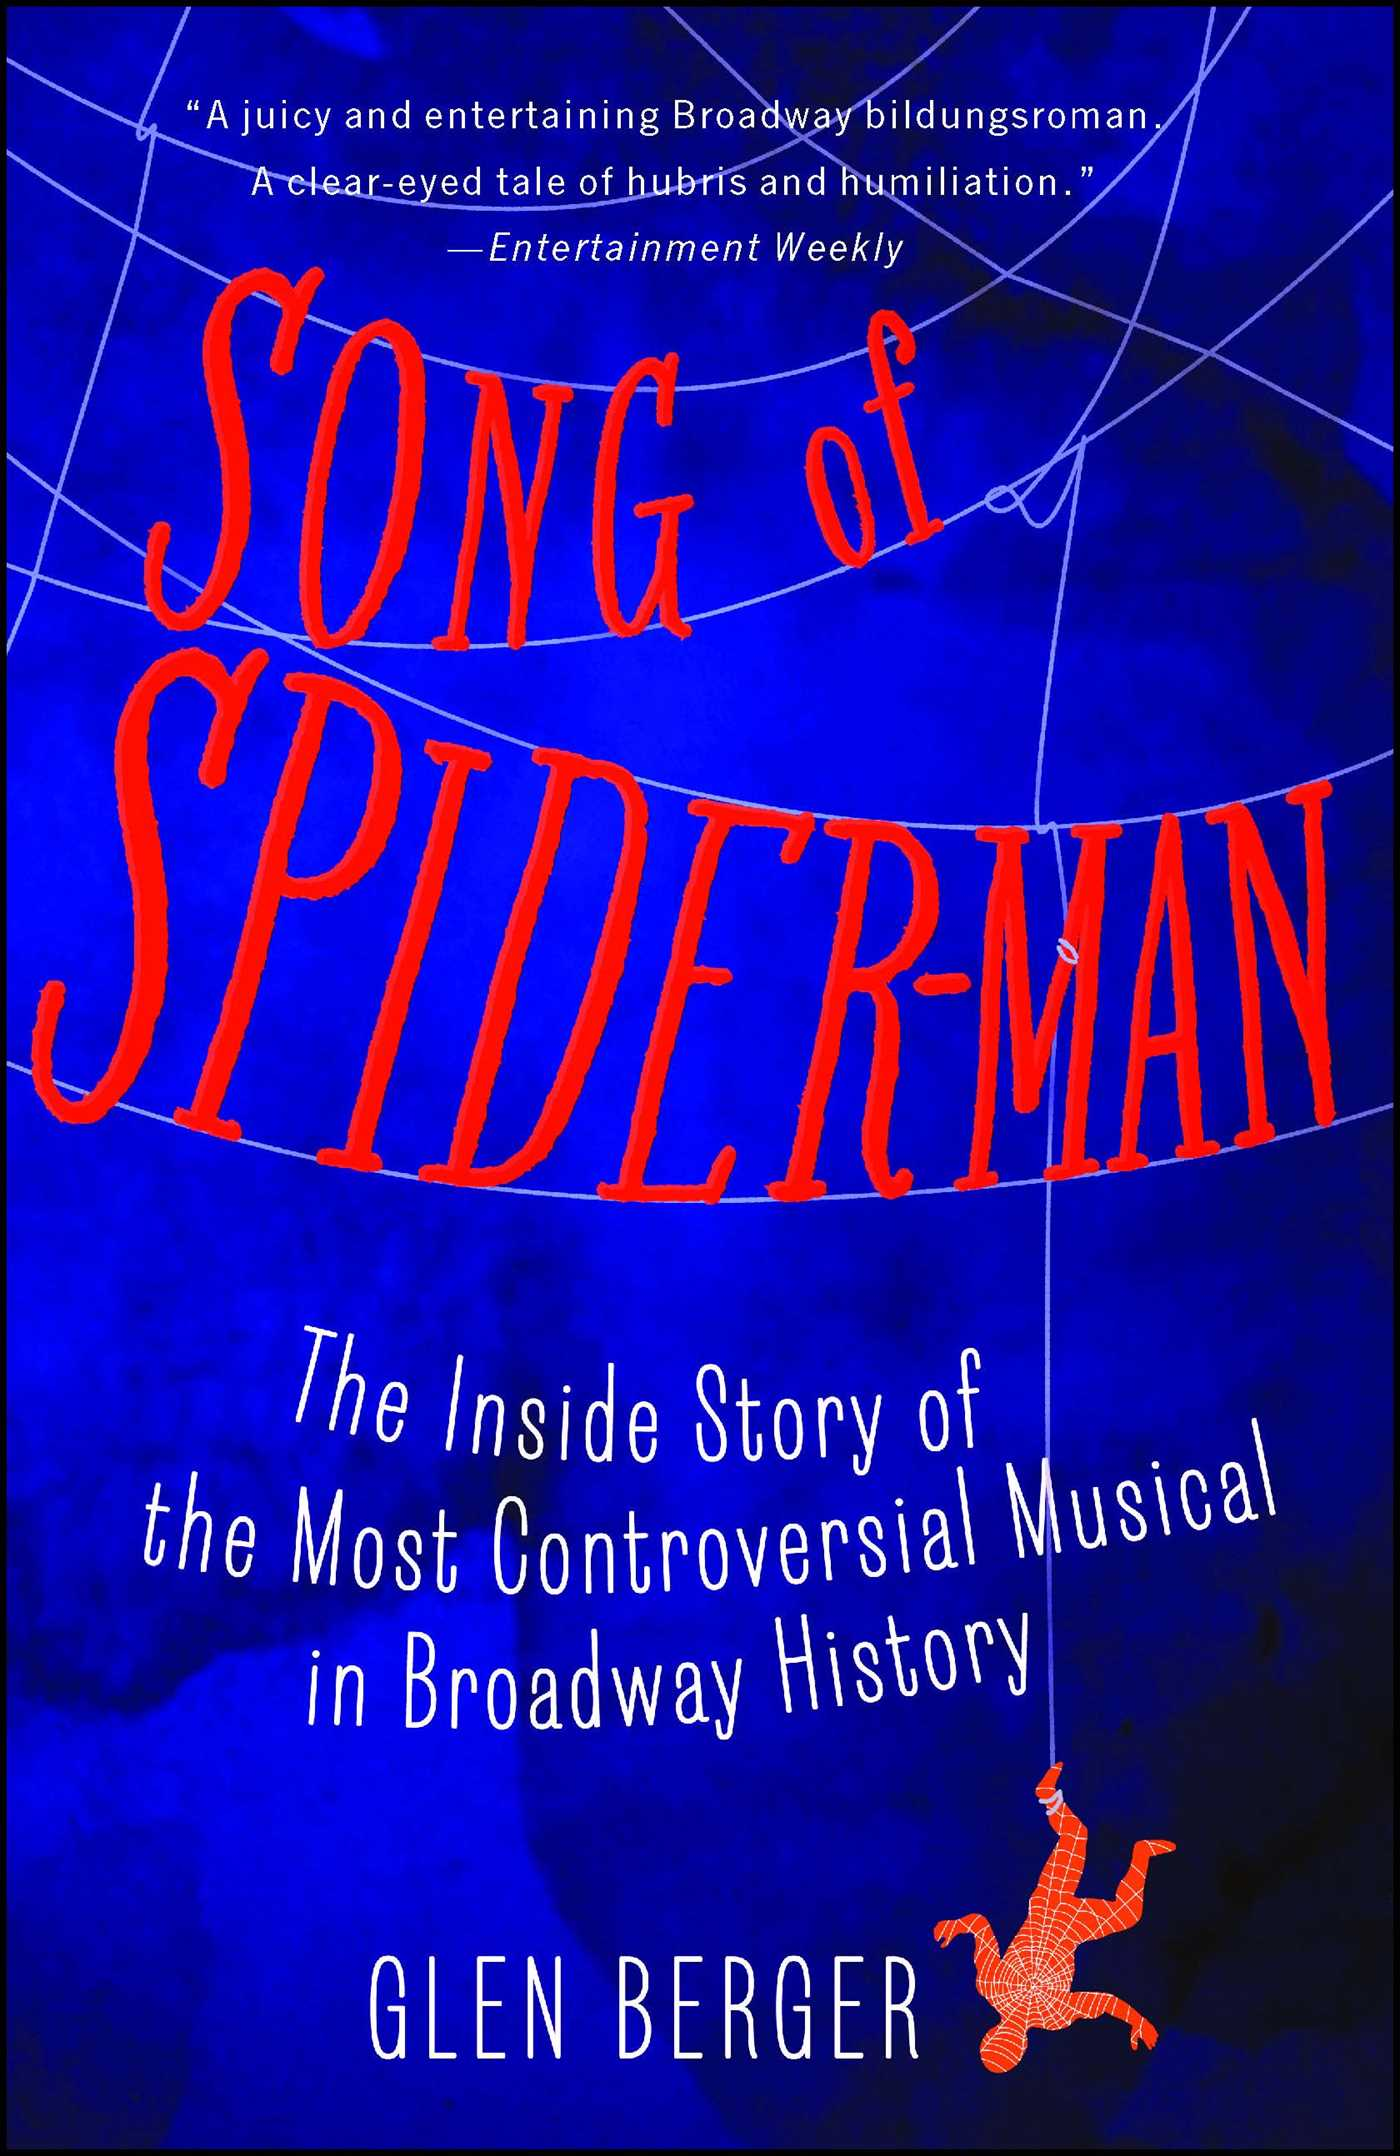 Song-of-spider-man-9781451684575_hr